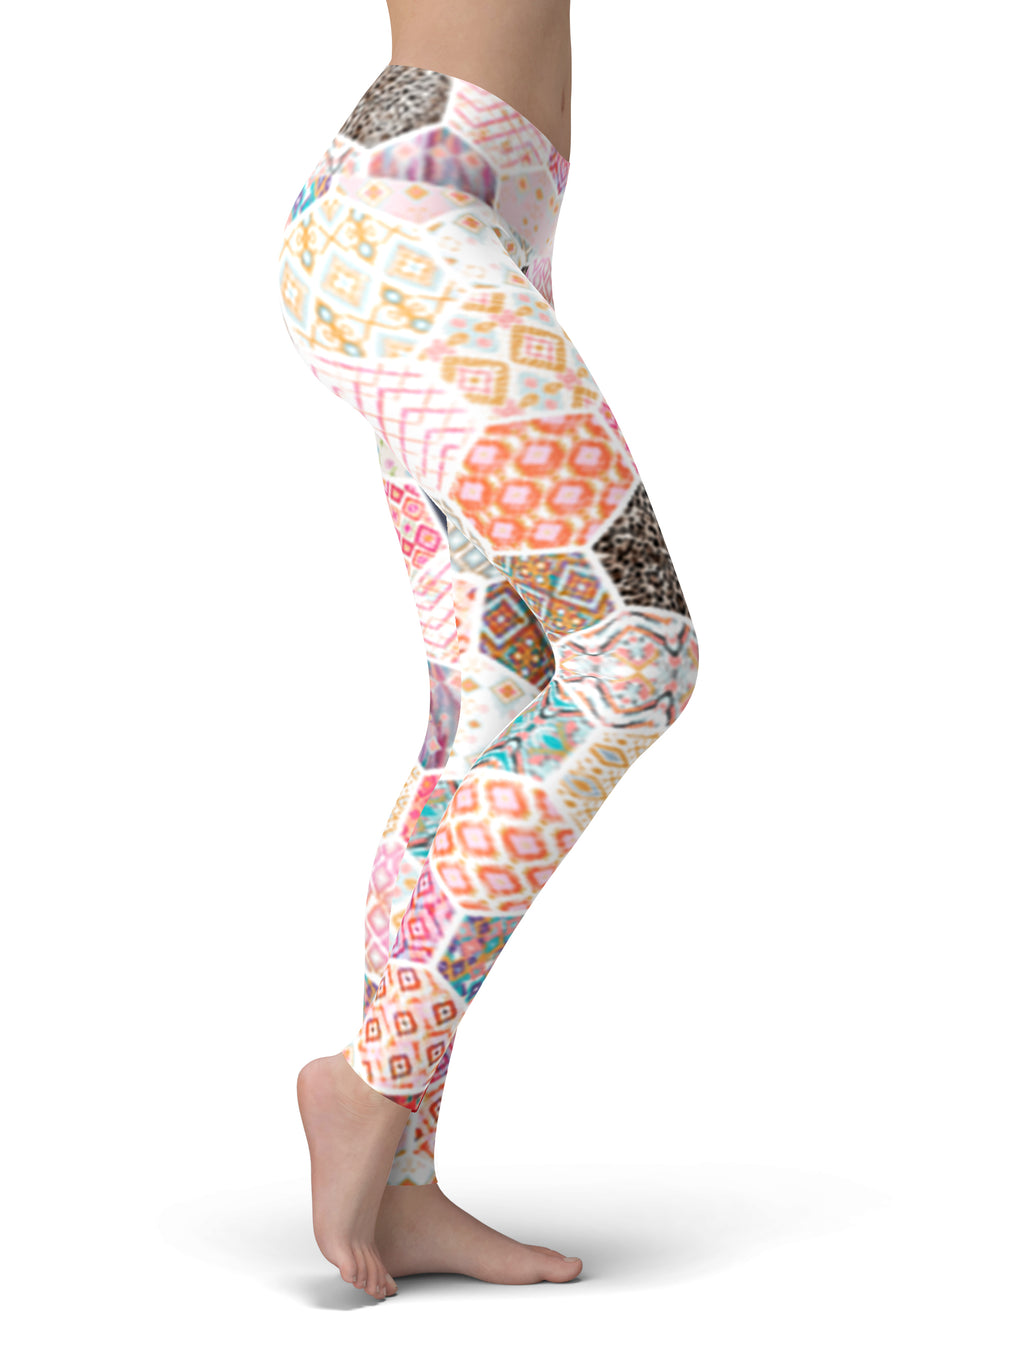 Spirit Kaleidoscope Yoga Pants